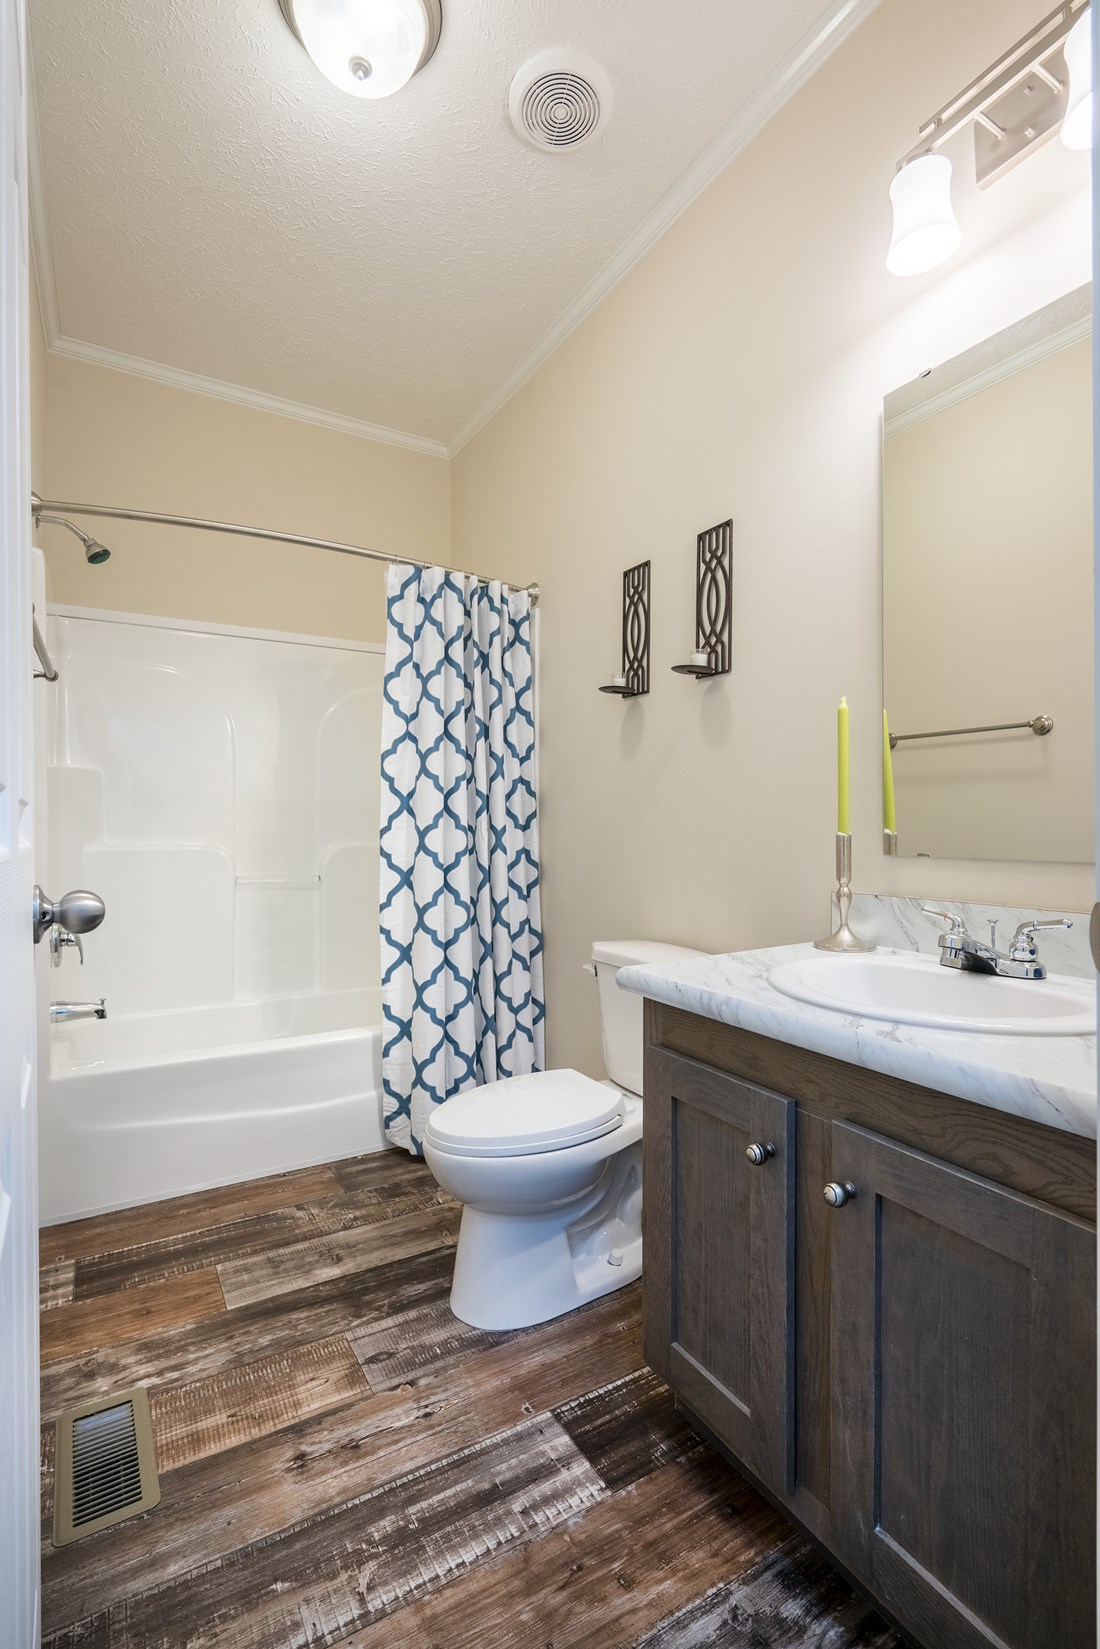 The 2062 CLASSIC Guest Bathroom. This Manufactured Mobile Home features 3 bedrooms and 2 baths.